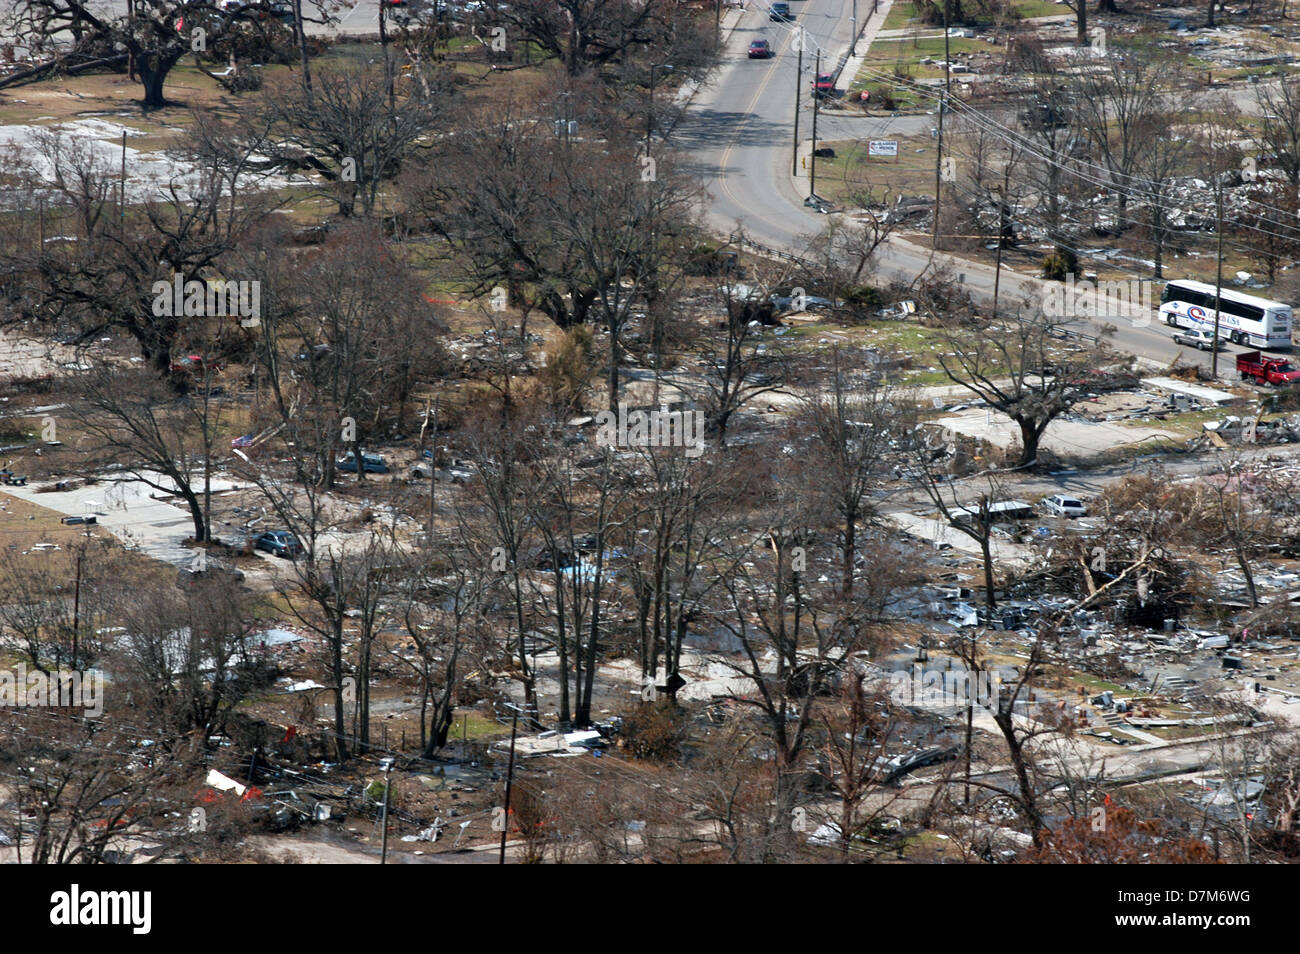 Aerial view of destroyed homes in the aftermath of ...